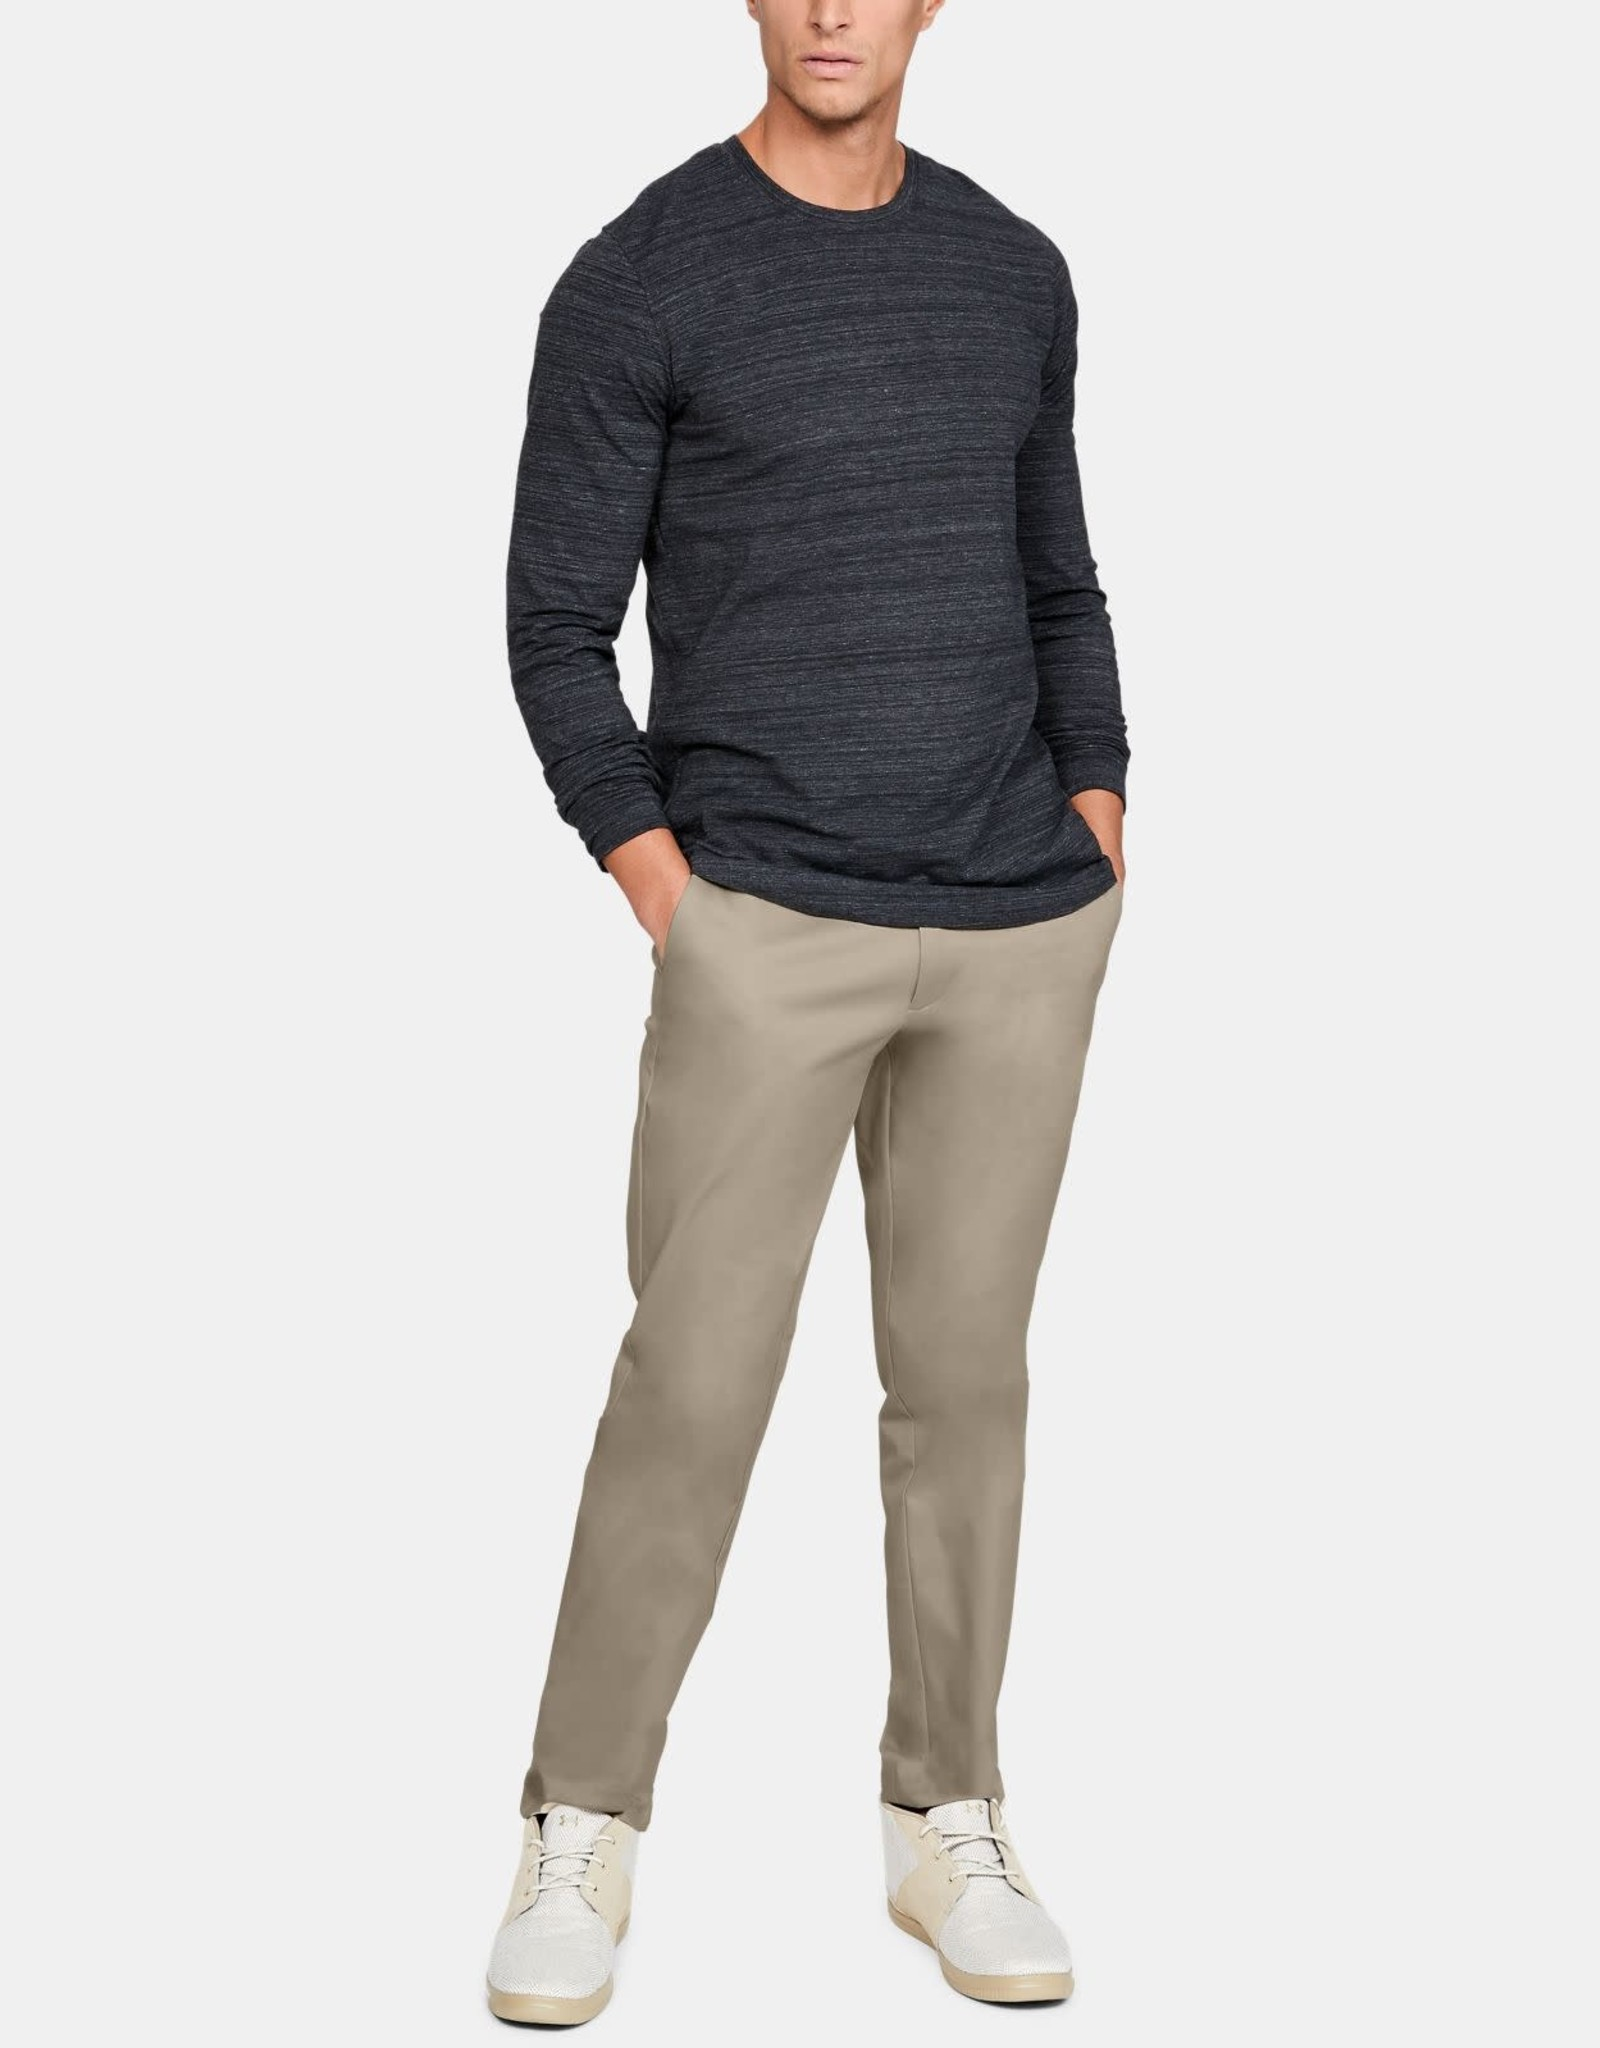 Under Armour Golf Showdown chino taper pant - brown